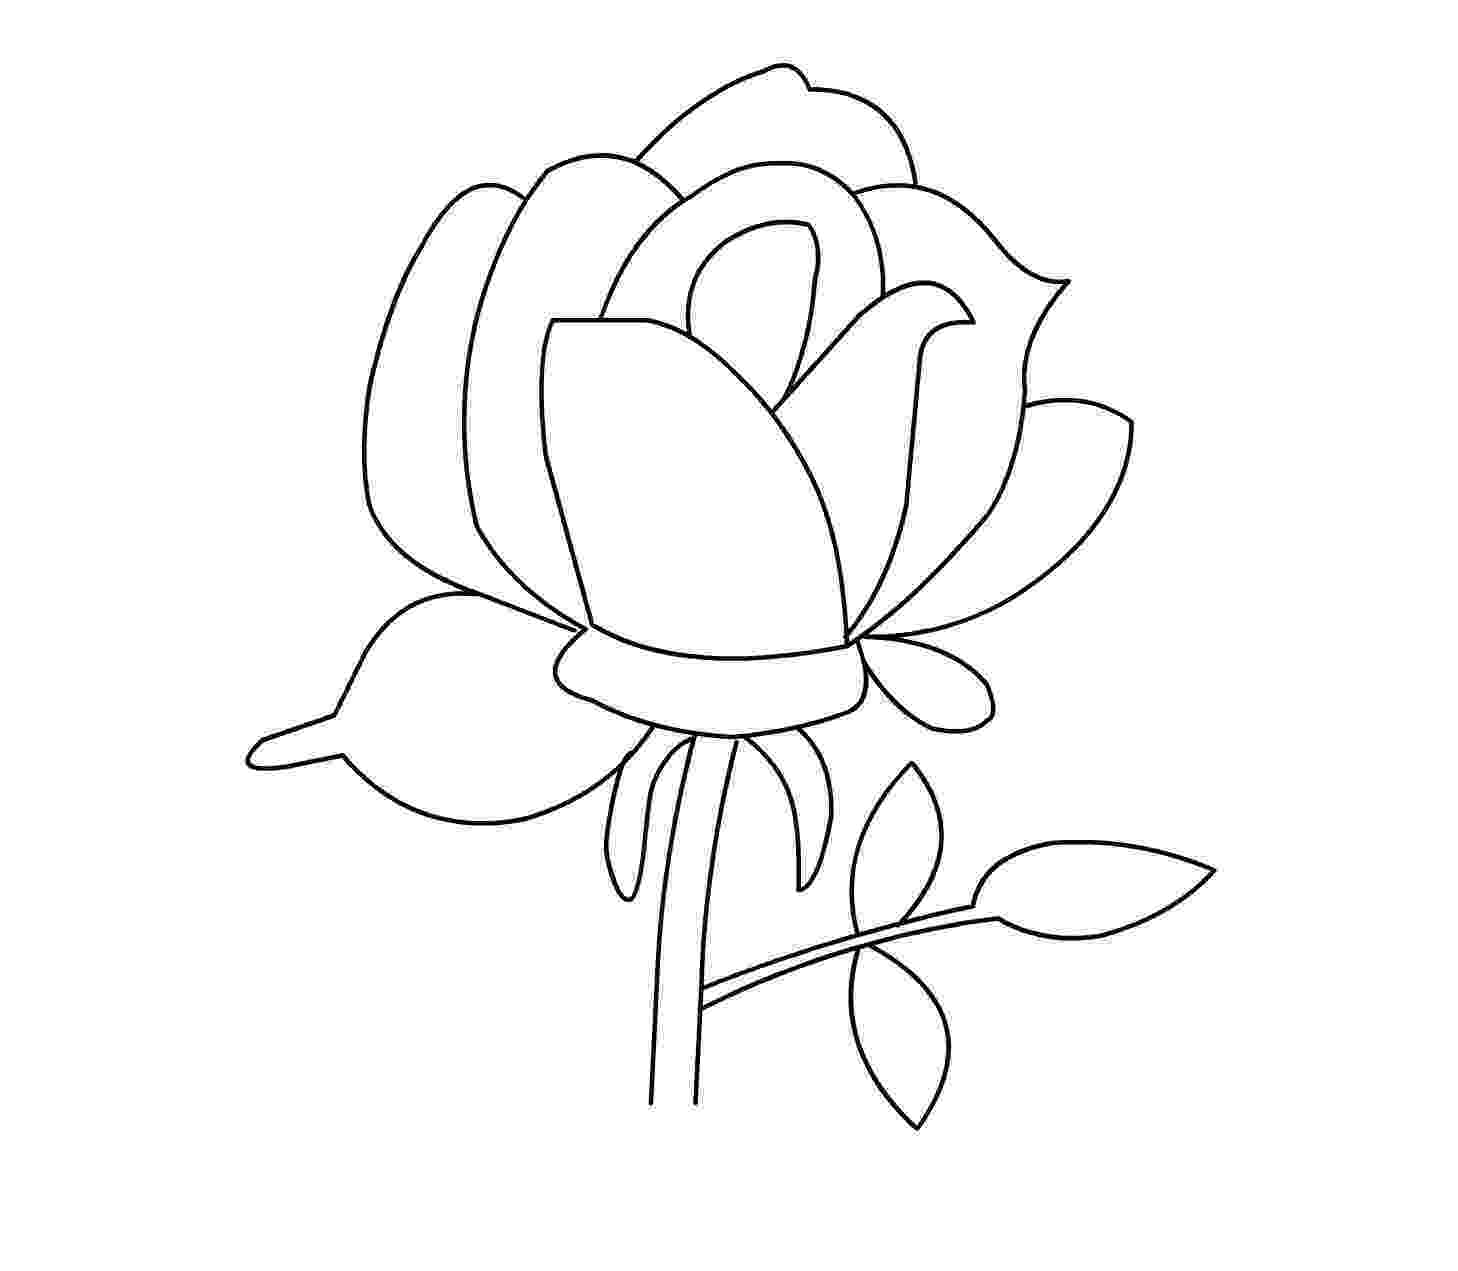 roses coloring pictures free printable roses coloring pages for kids pictures roses coloring 1 2